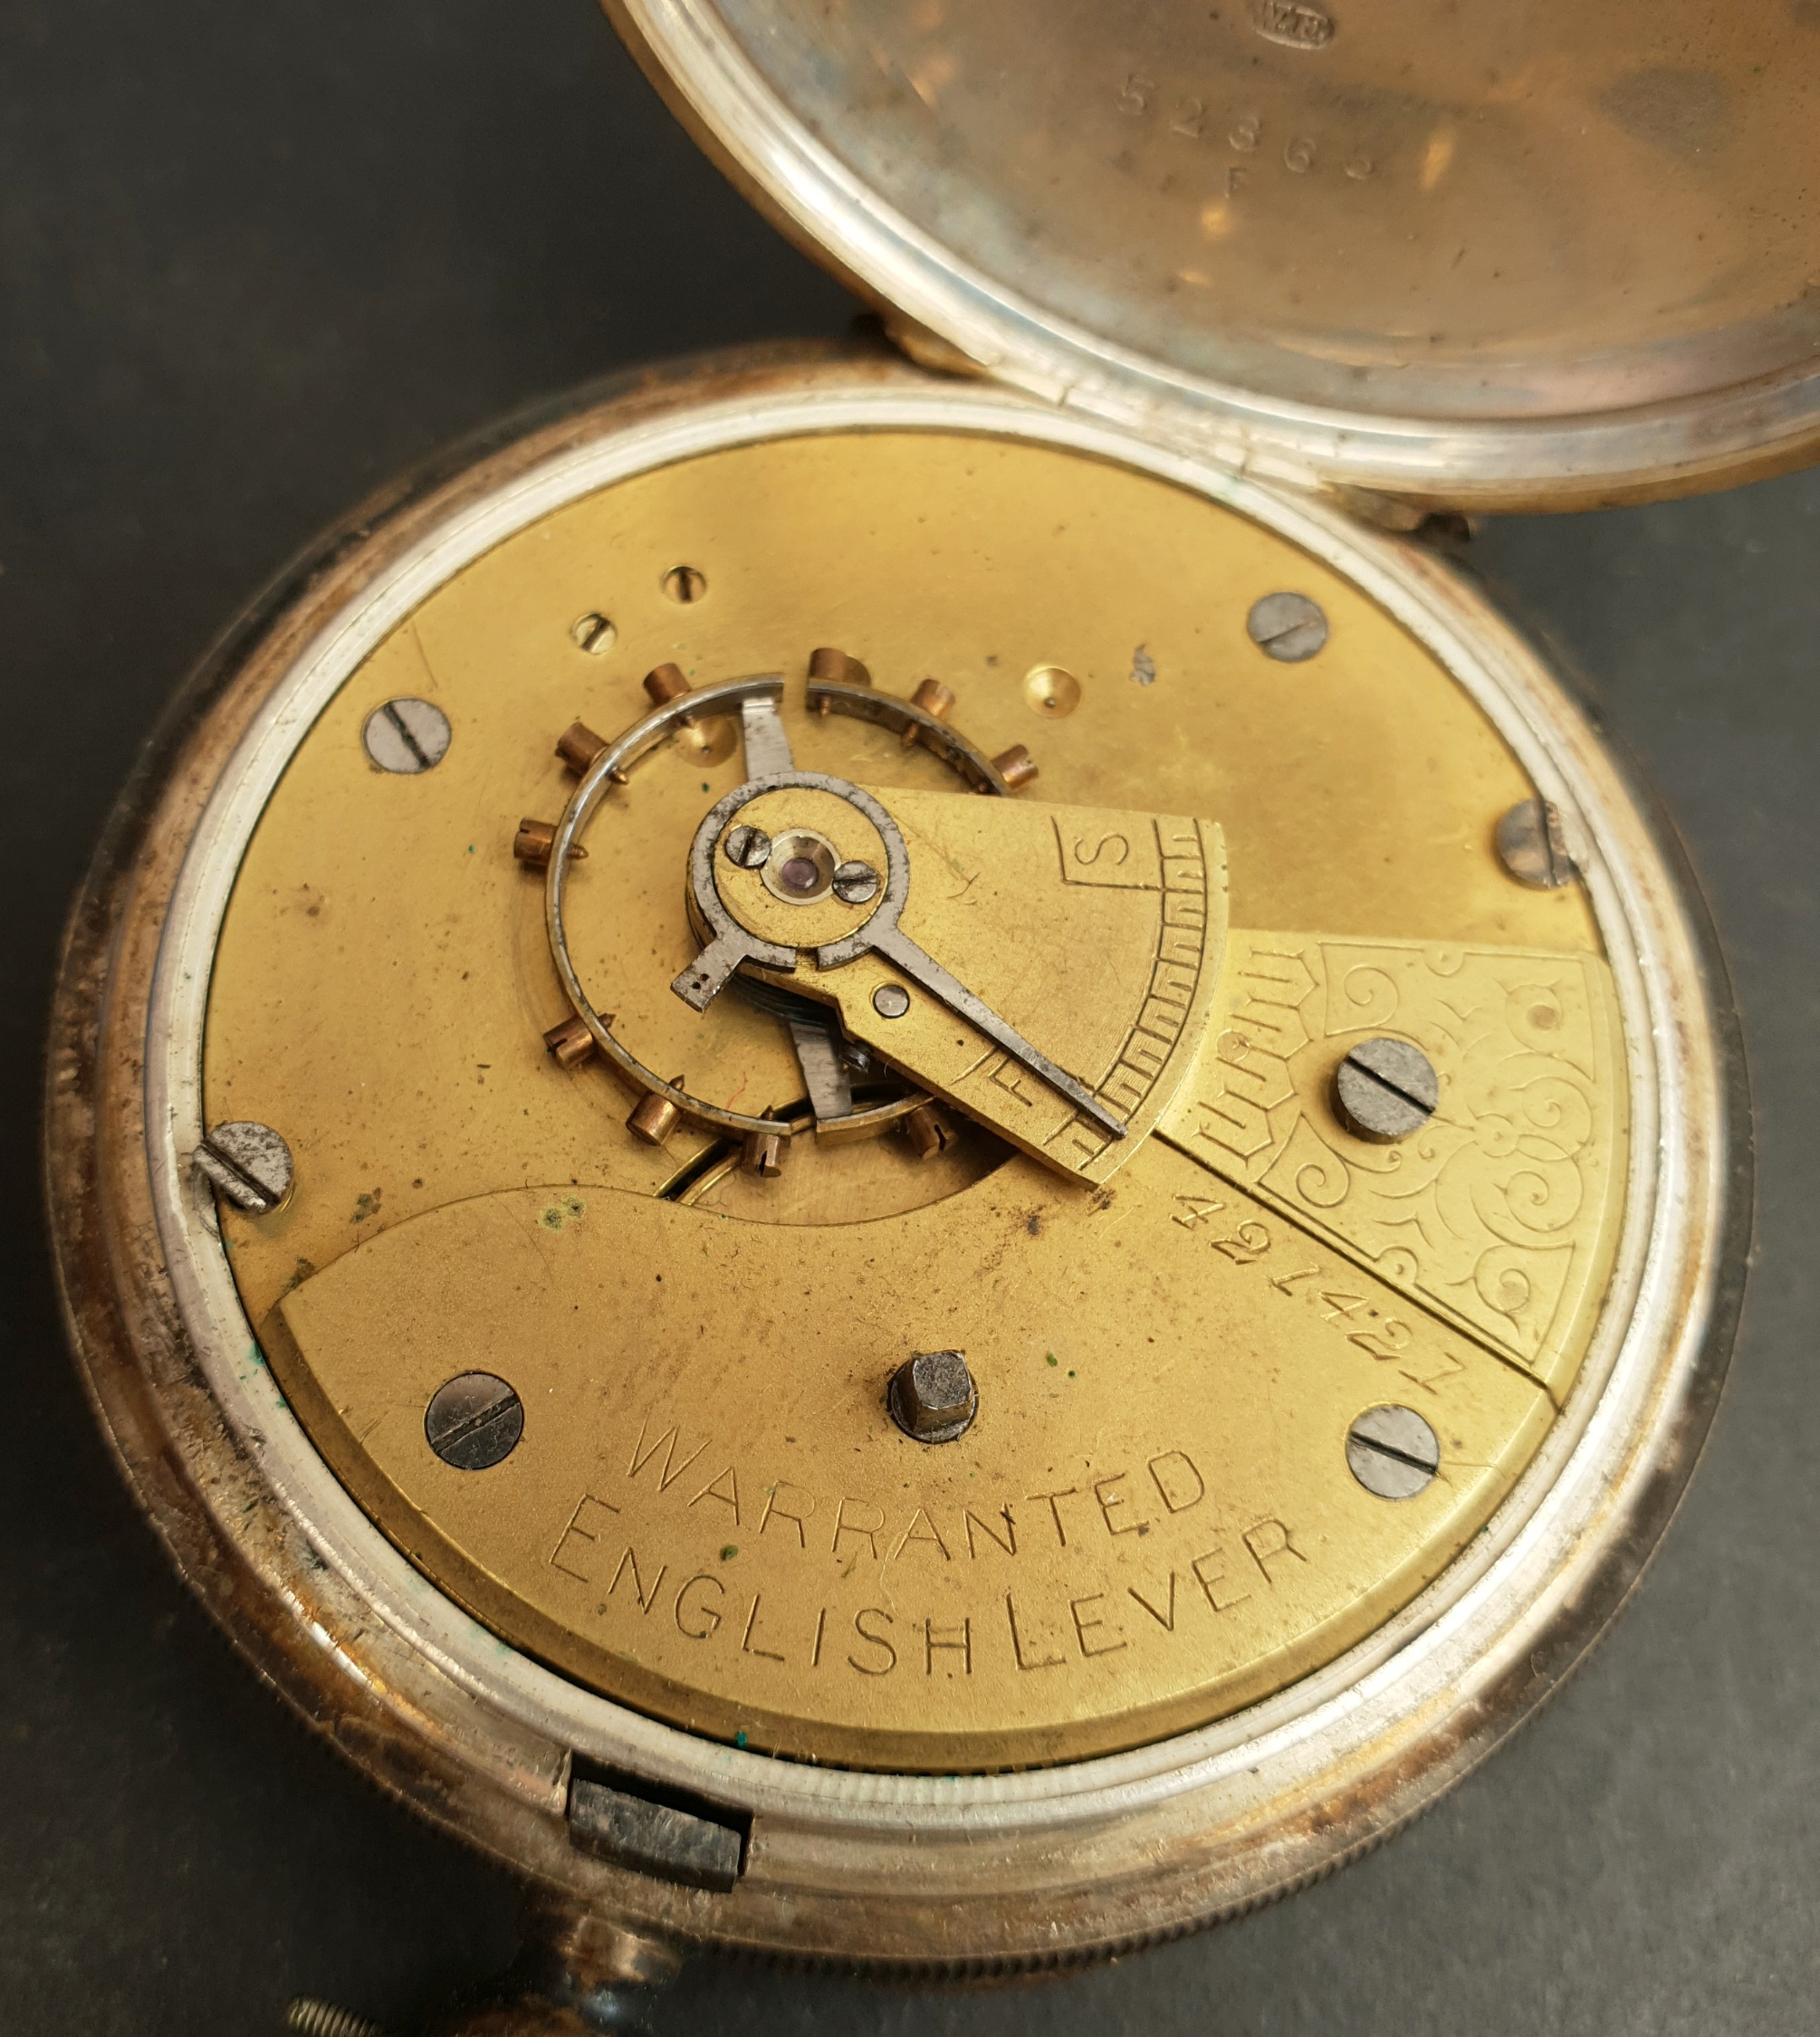 Antiques Silver Cased English Lever Pocket Watch - Image 2 of 4